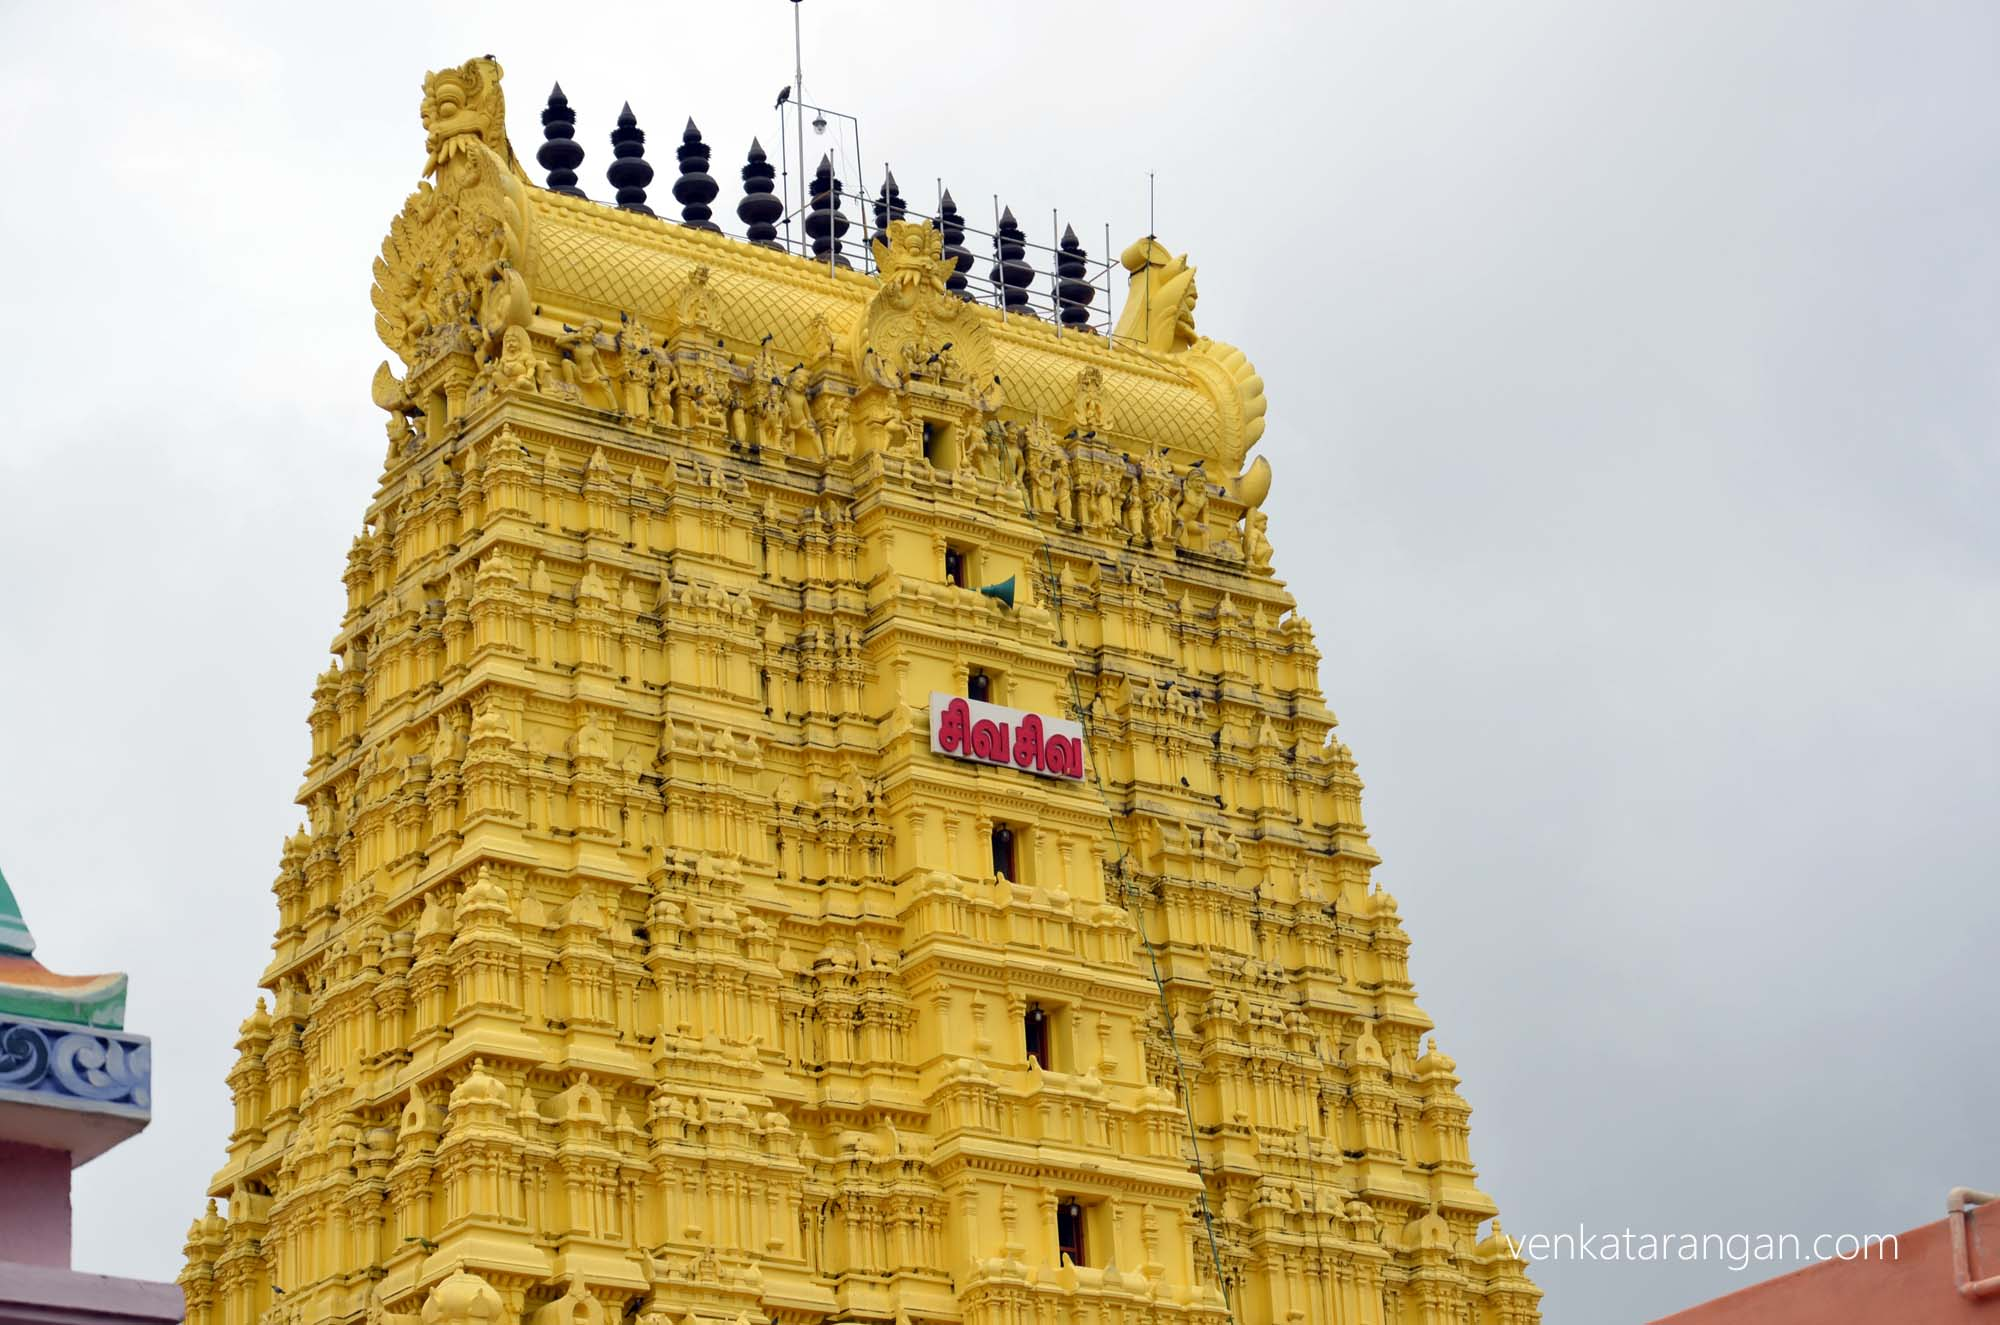 Main tower (Tower) of Ramanathaswamy Temple, Rameswaram